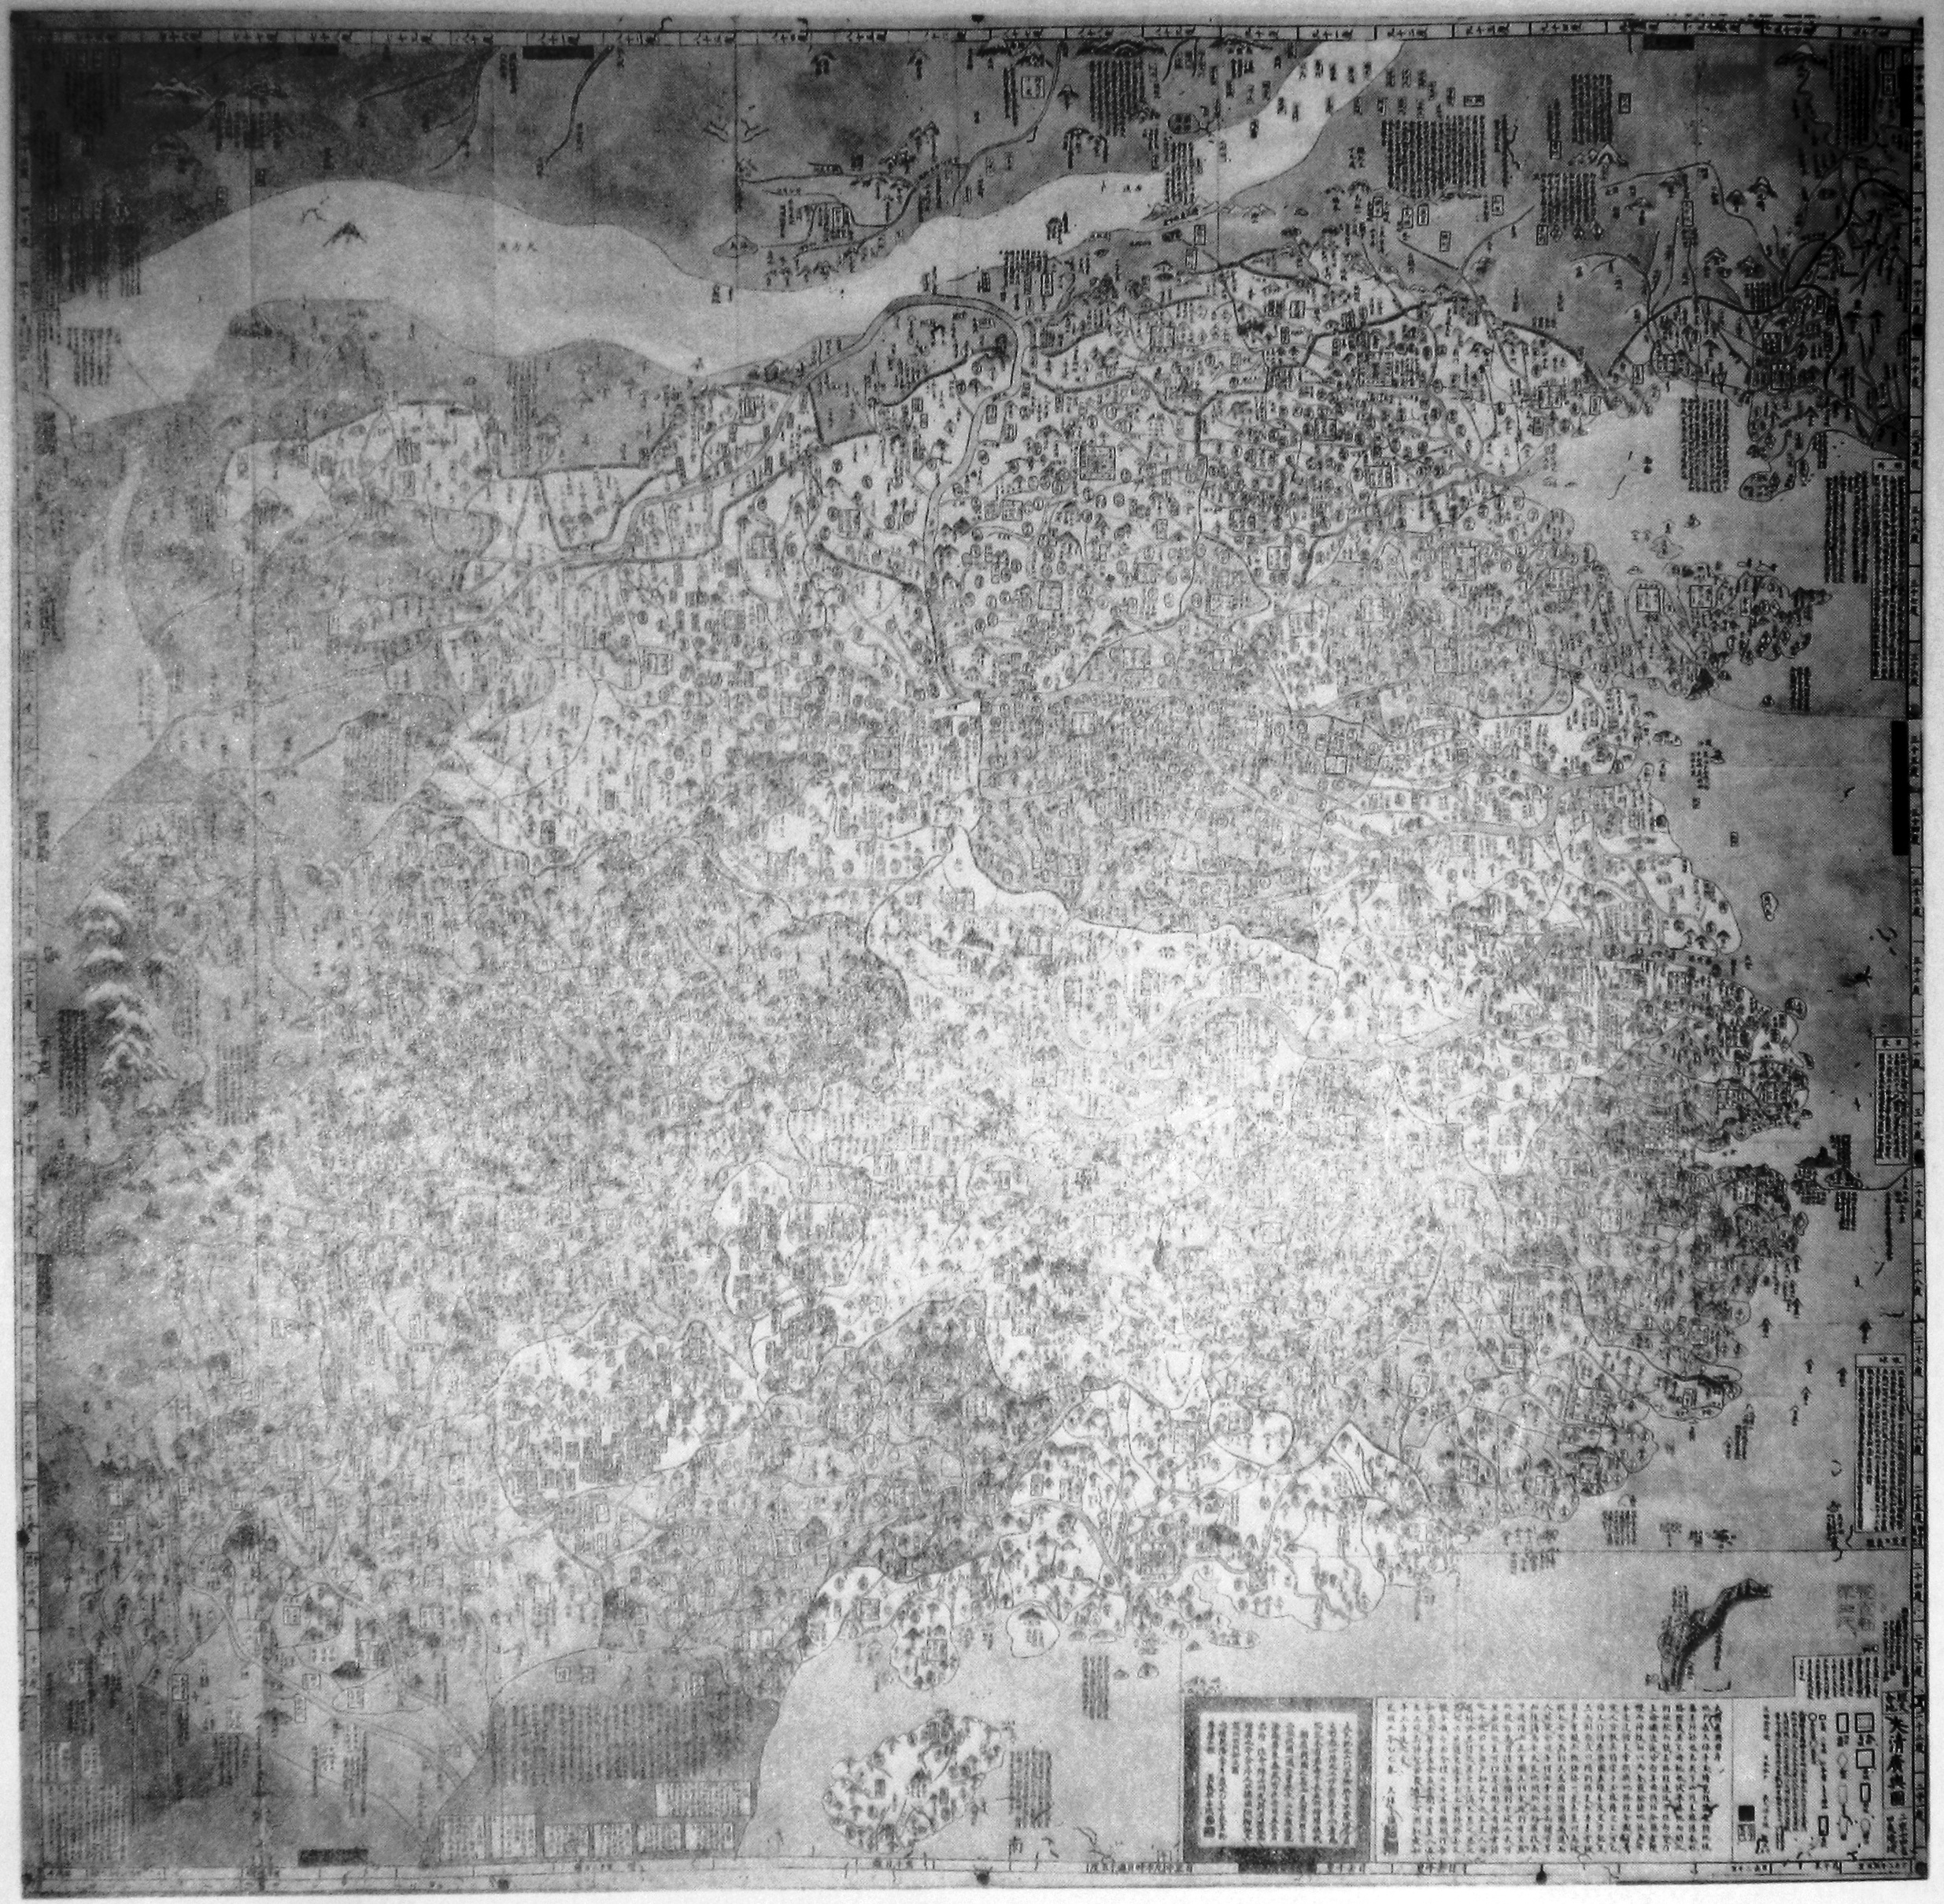 Photo of the 1785 Edo Jidai 江戸時代 (Edo Period)(1603-1868) Japan, Dai Shin Koyozu 大清広輿図 (Enlarged Illustration of the Great Qing) map